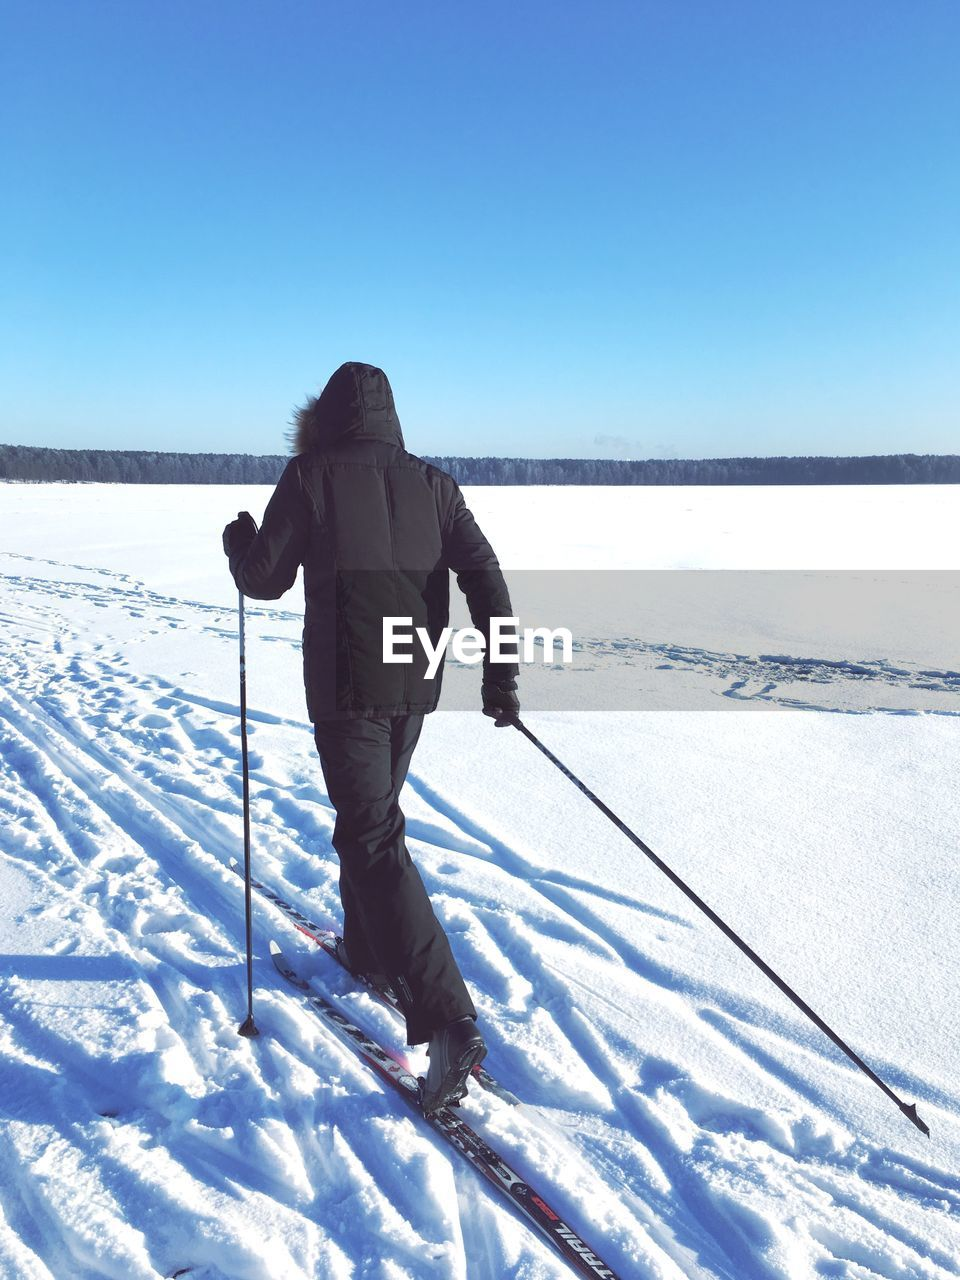 Person skiing on snow covered landscape against clear blue sky